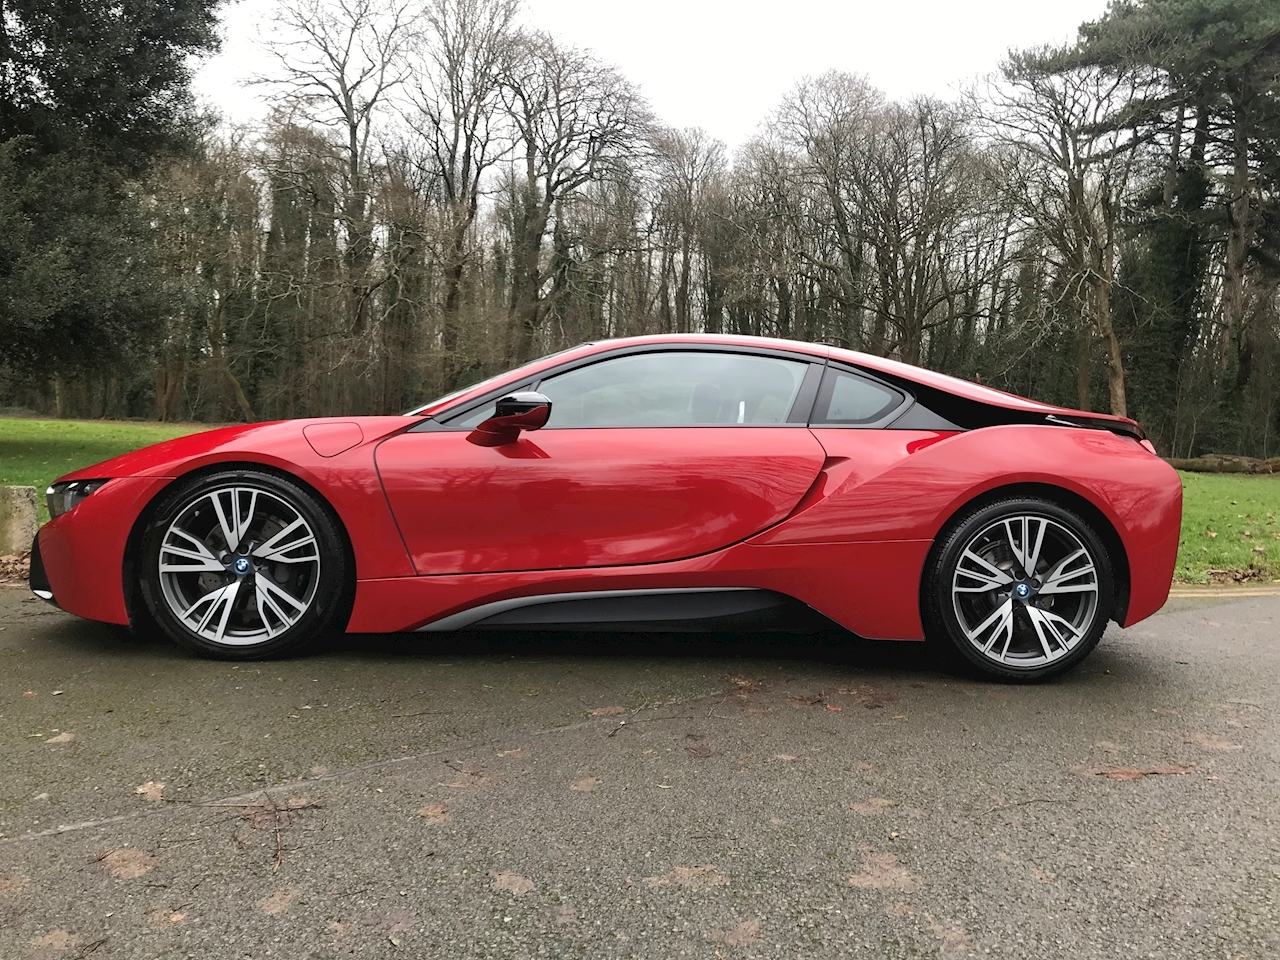 BMW I8 1.5 Protonic Red Edition 2017(17) - Large 2